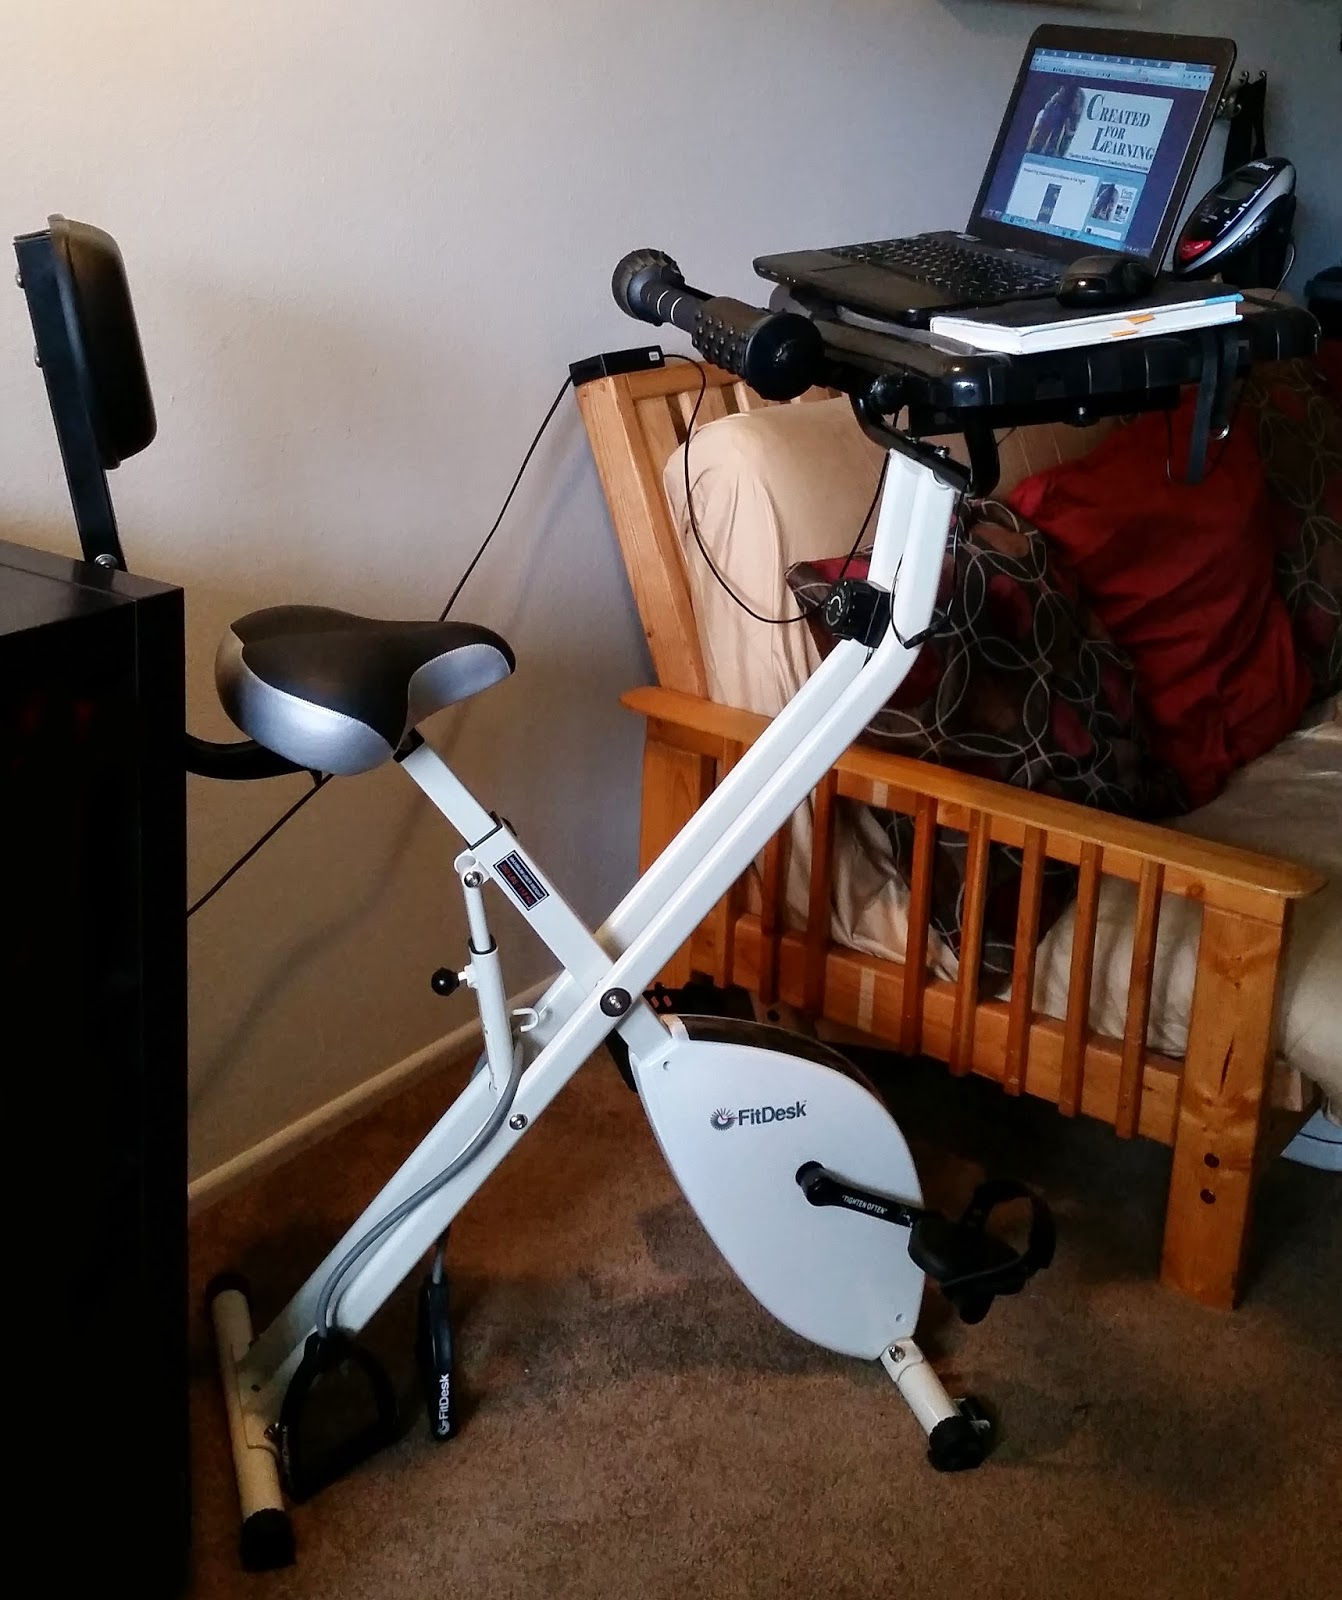 Fit Bicycle Desk, Exercise, Treadmill Desks, Teaching, Health, Created for Learning